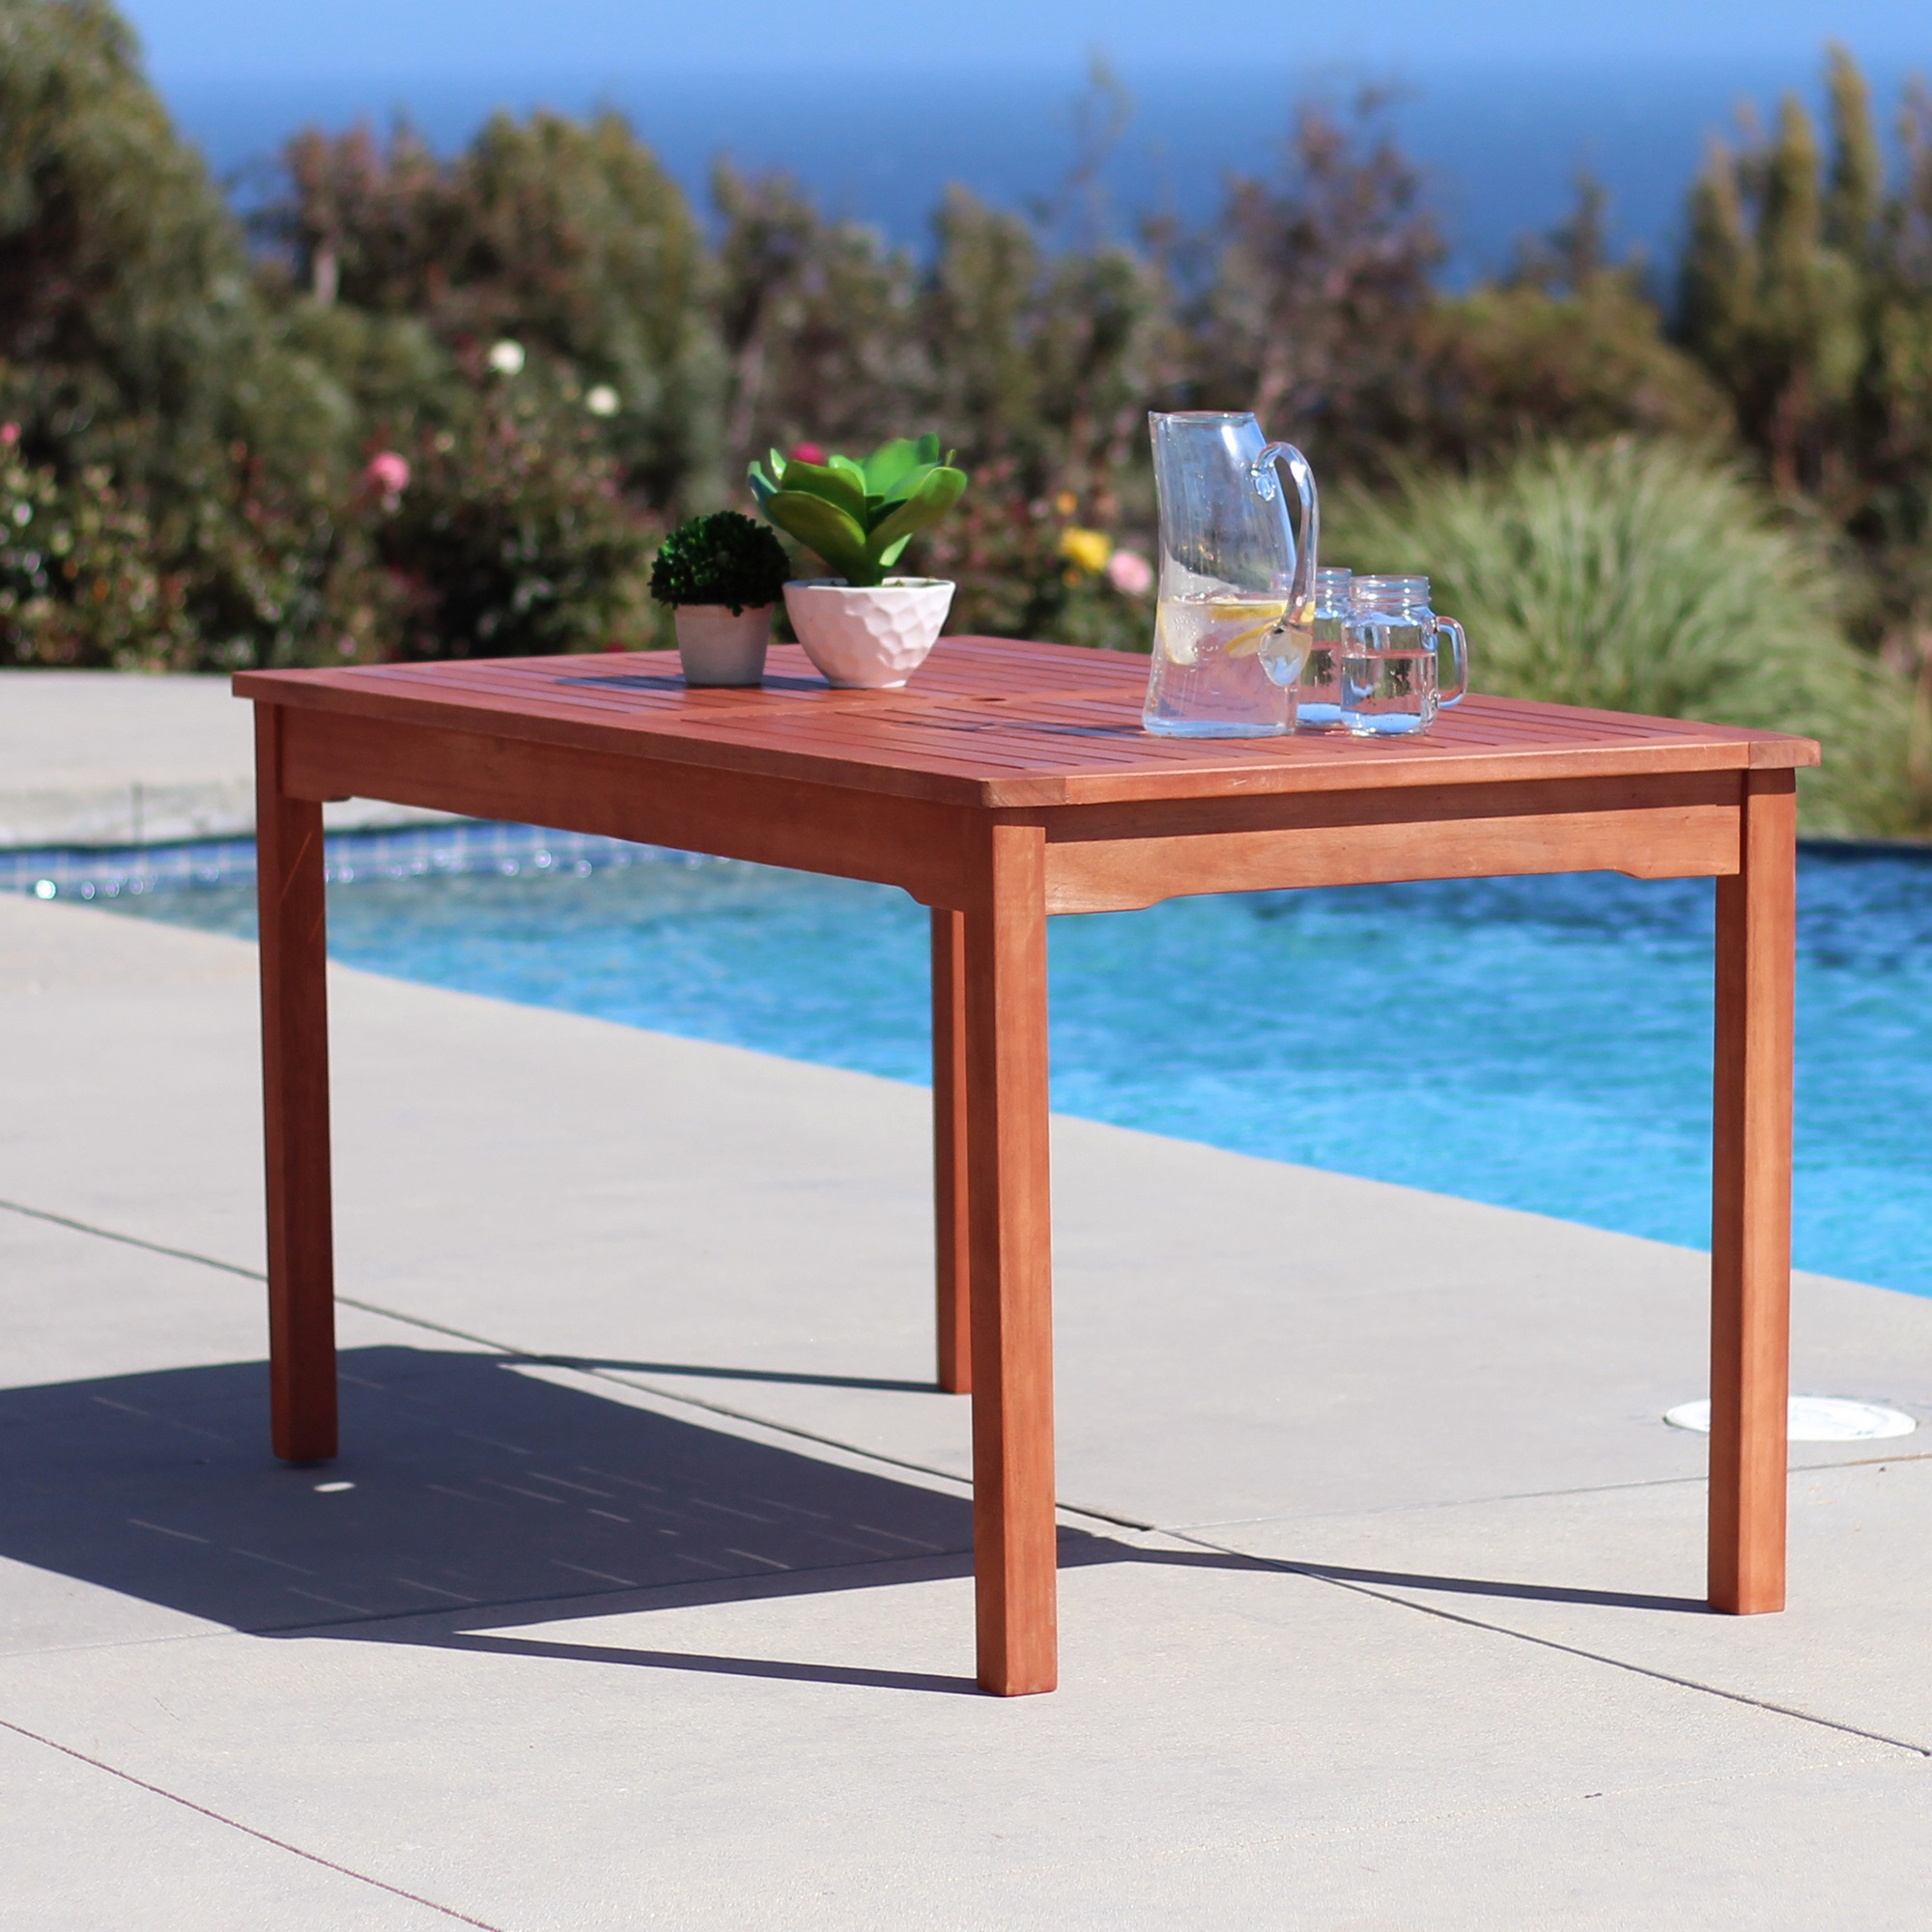 Malibu Outdoor Rectangular Patio Dining Table